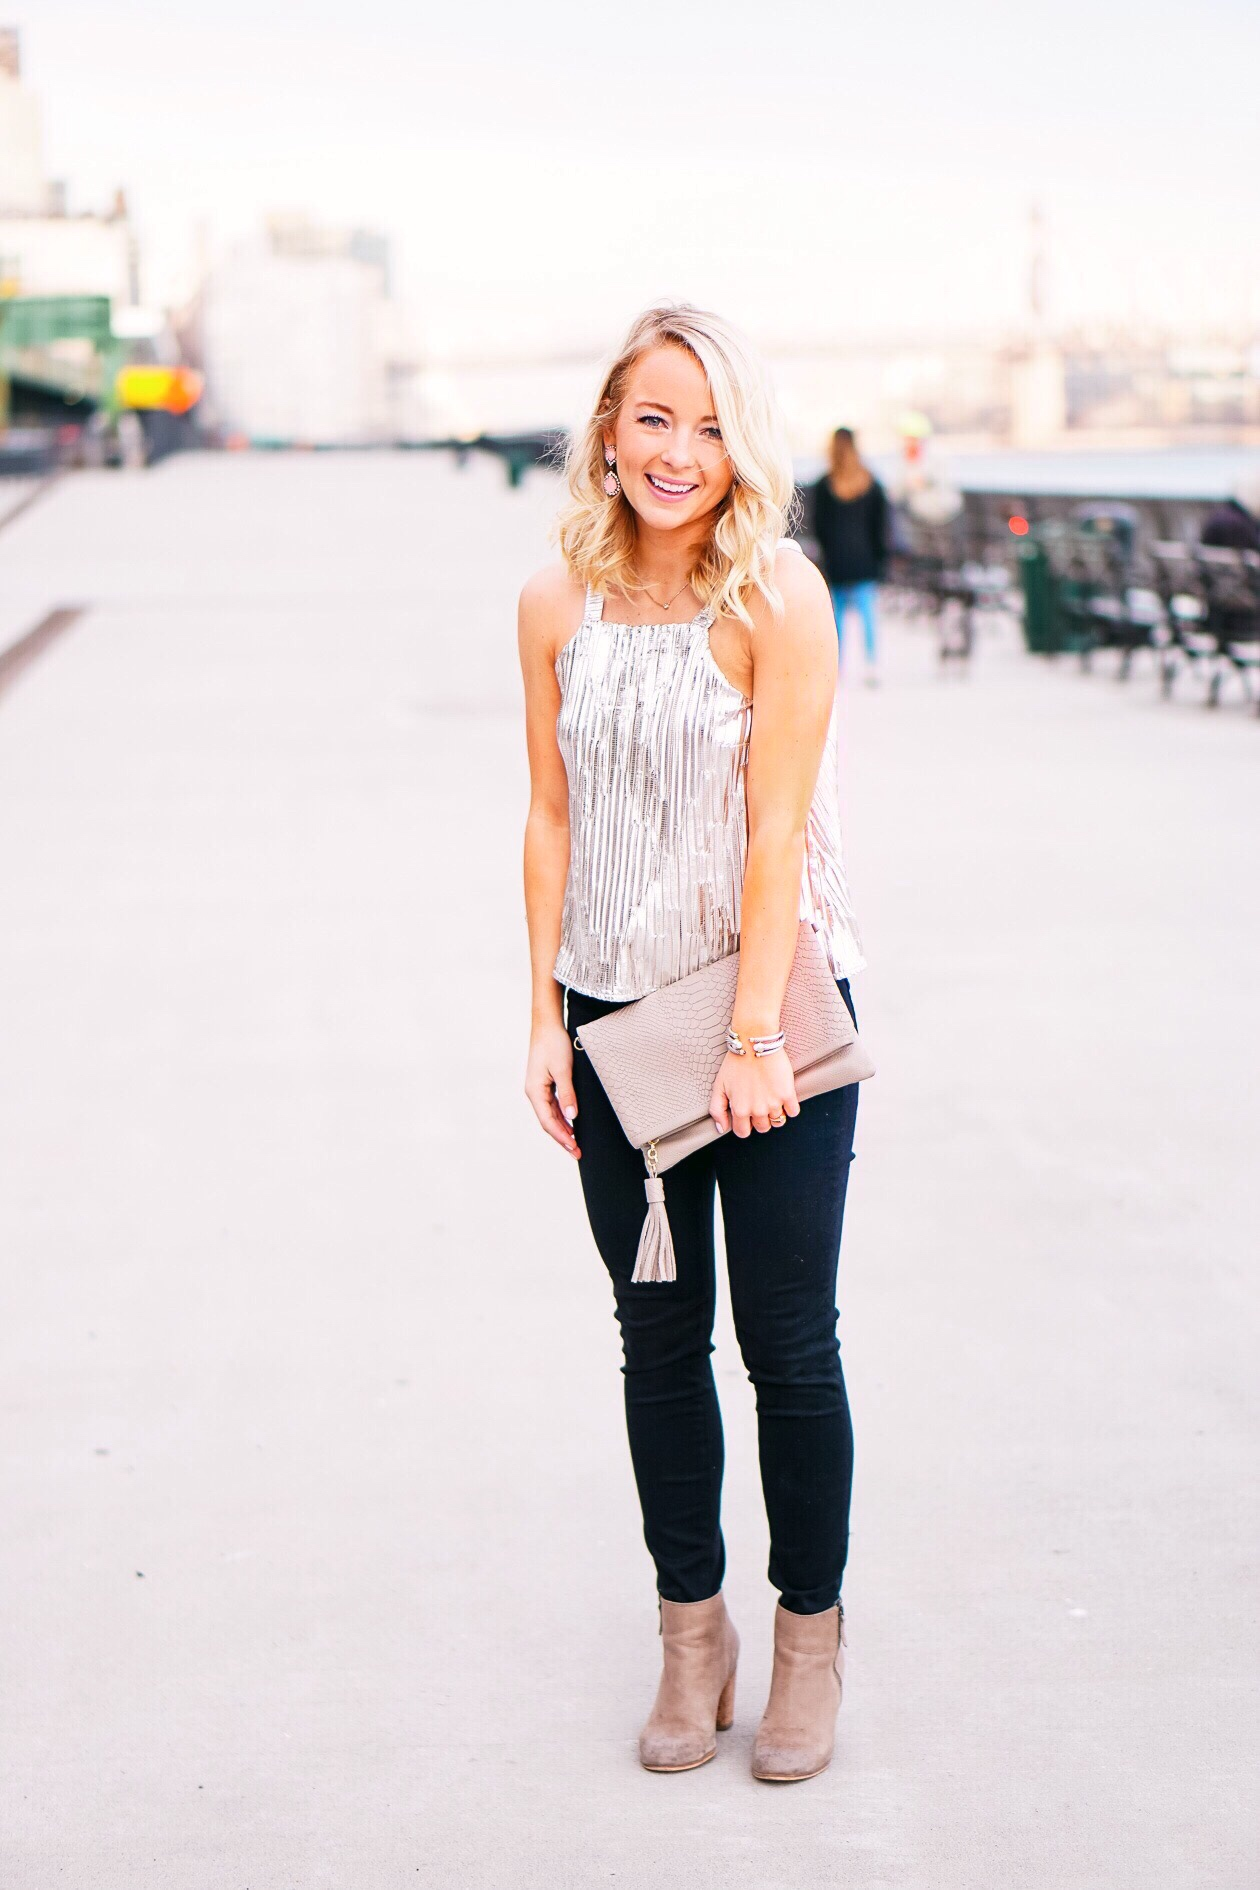 Silver shimmer top with Gigi New York monogrammed clutch